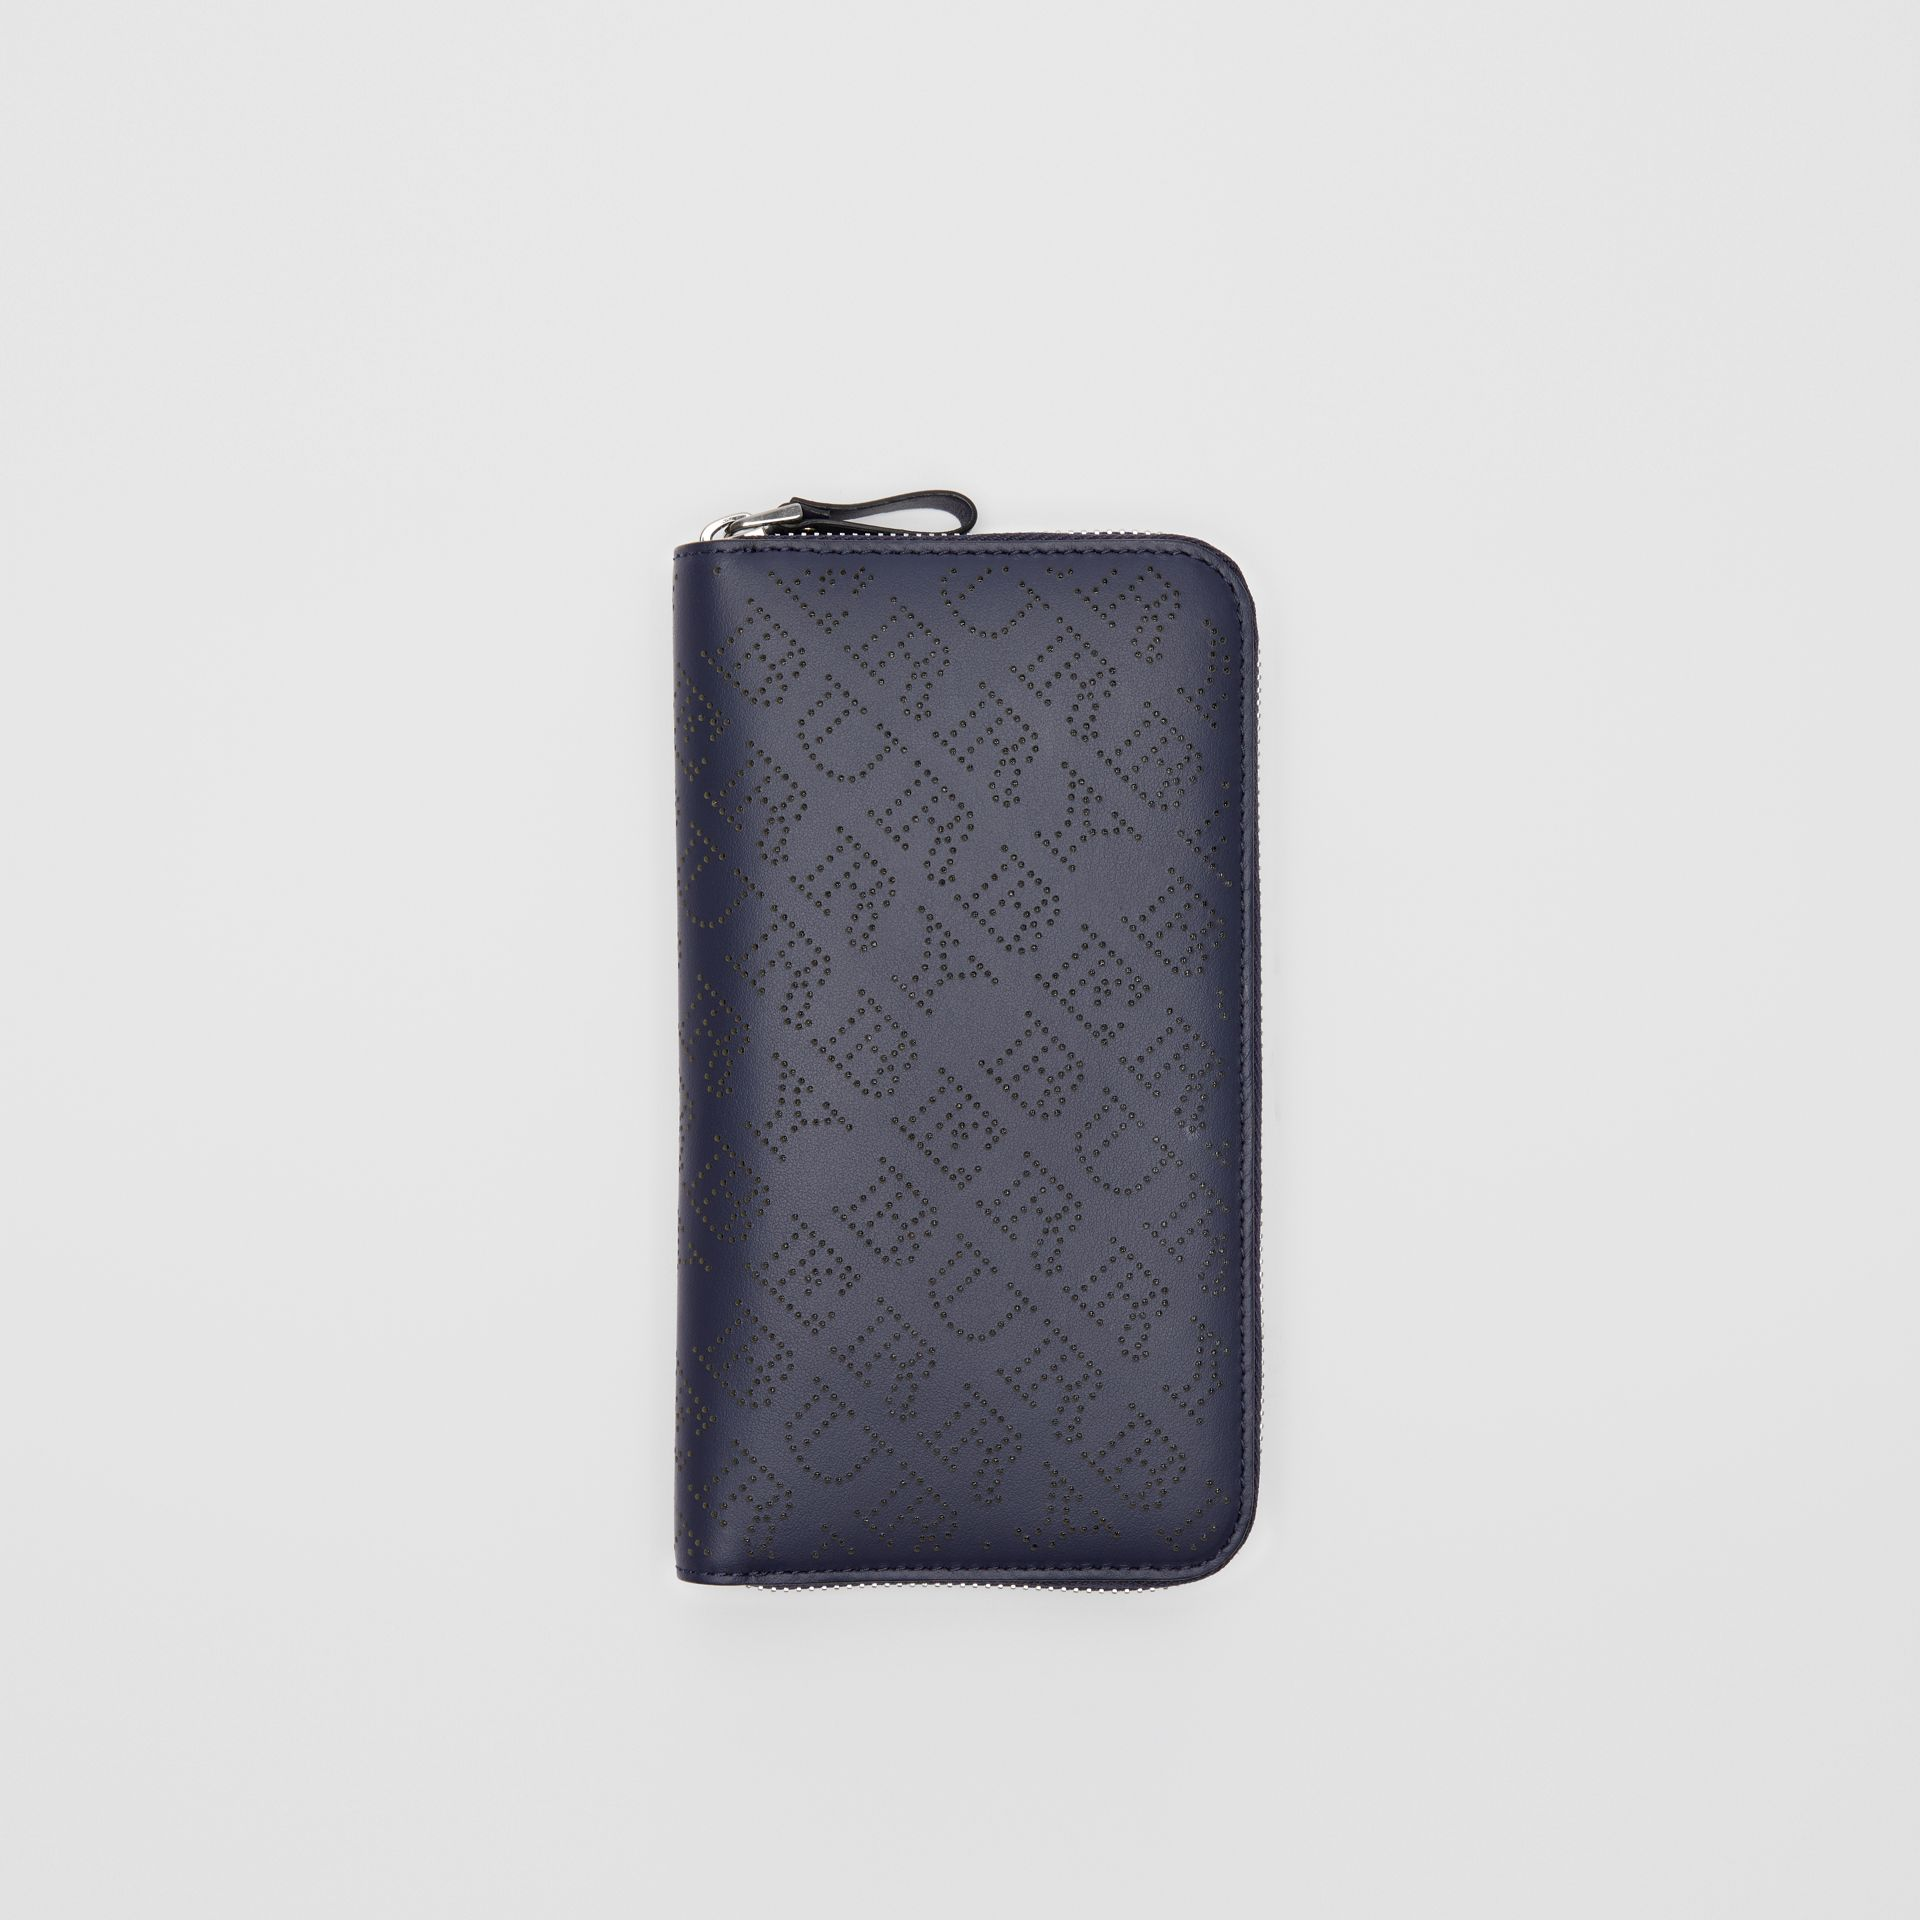 Perforated Leather Ziparound Wallet in Navy - Women | Burberry - gallery image 0